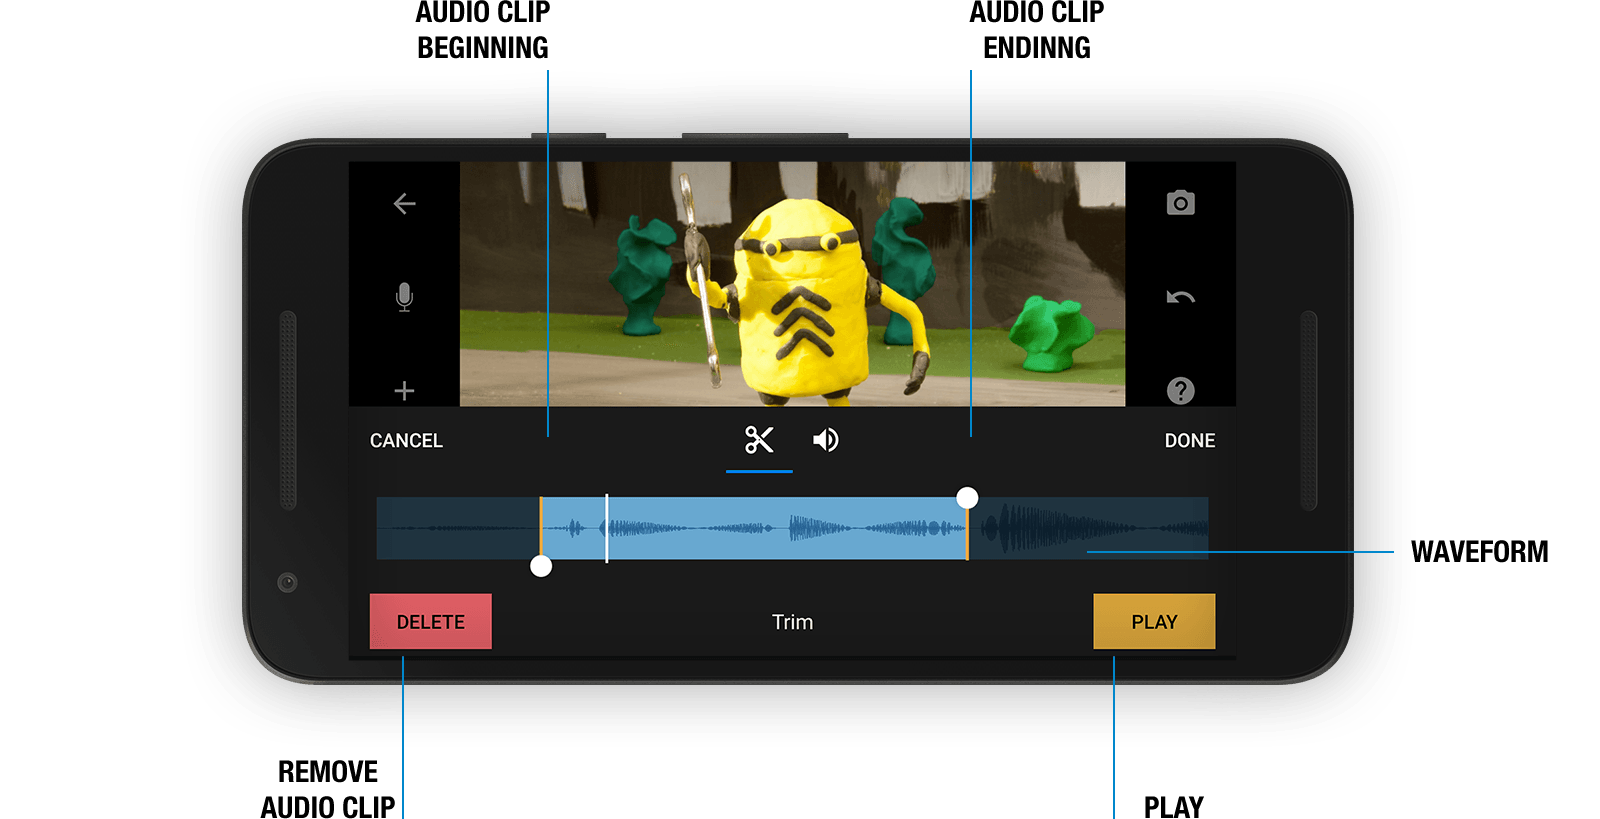 Stop Motion Studio for Android